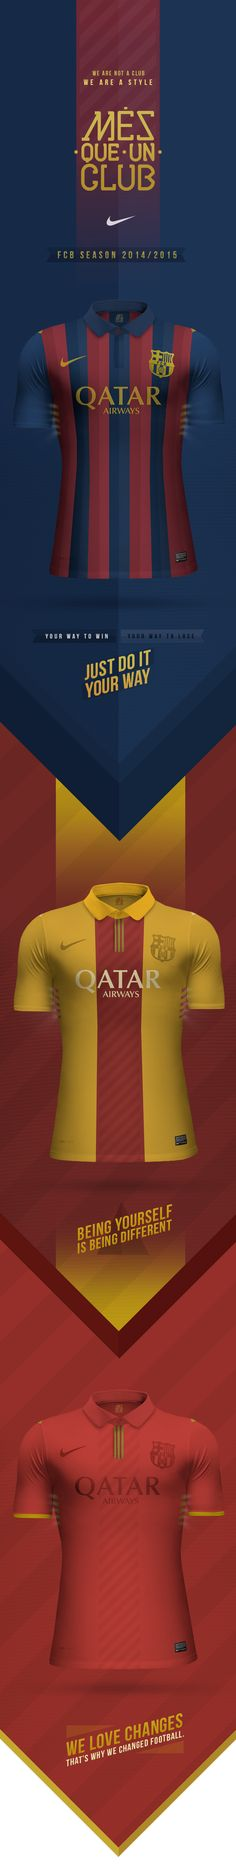 Barcelona FC - Concept by E S, via Behance